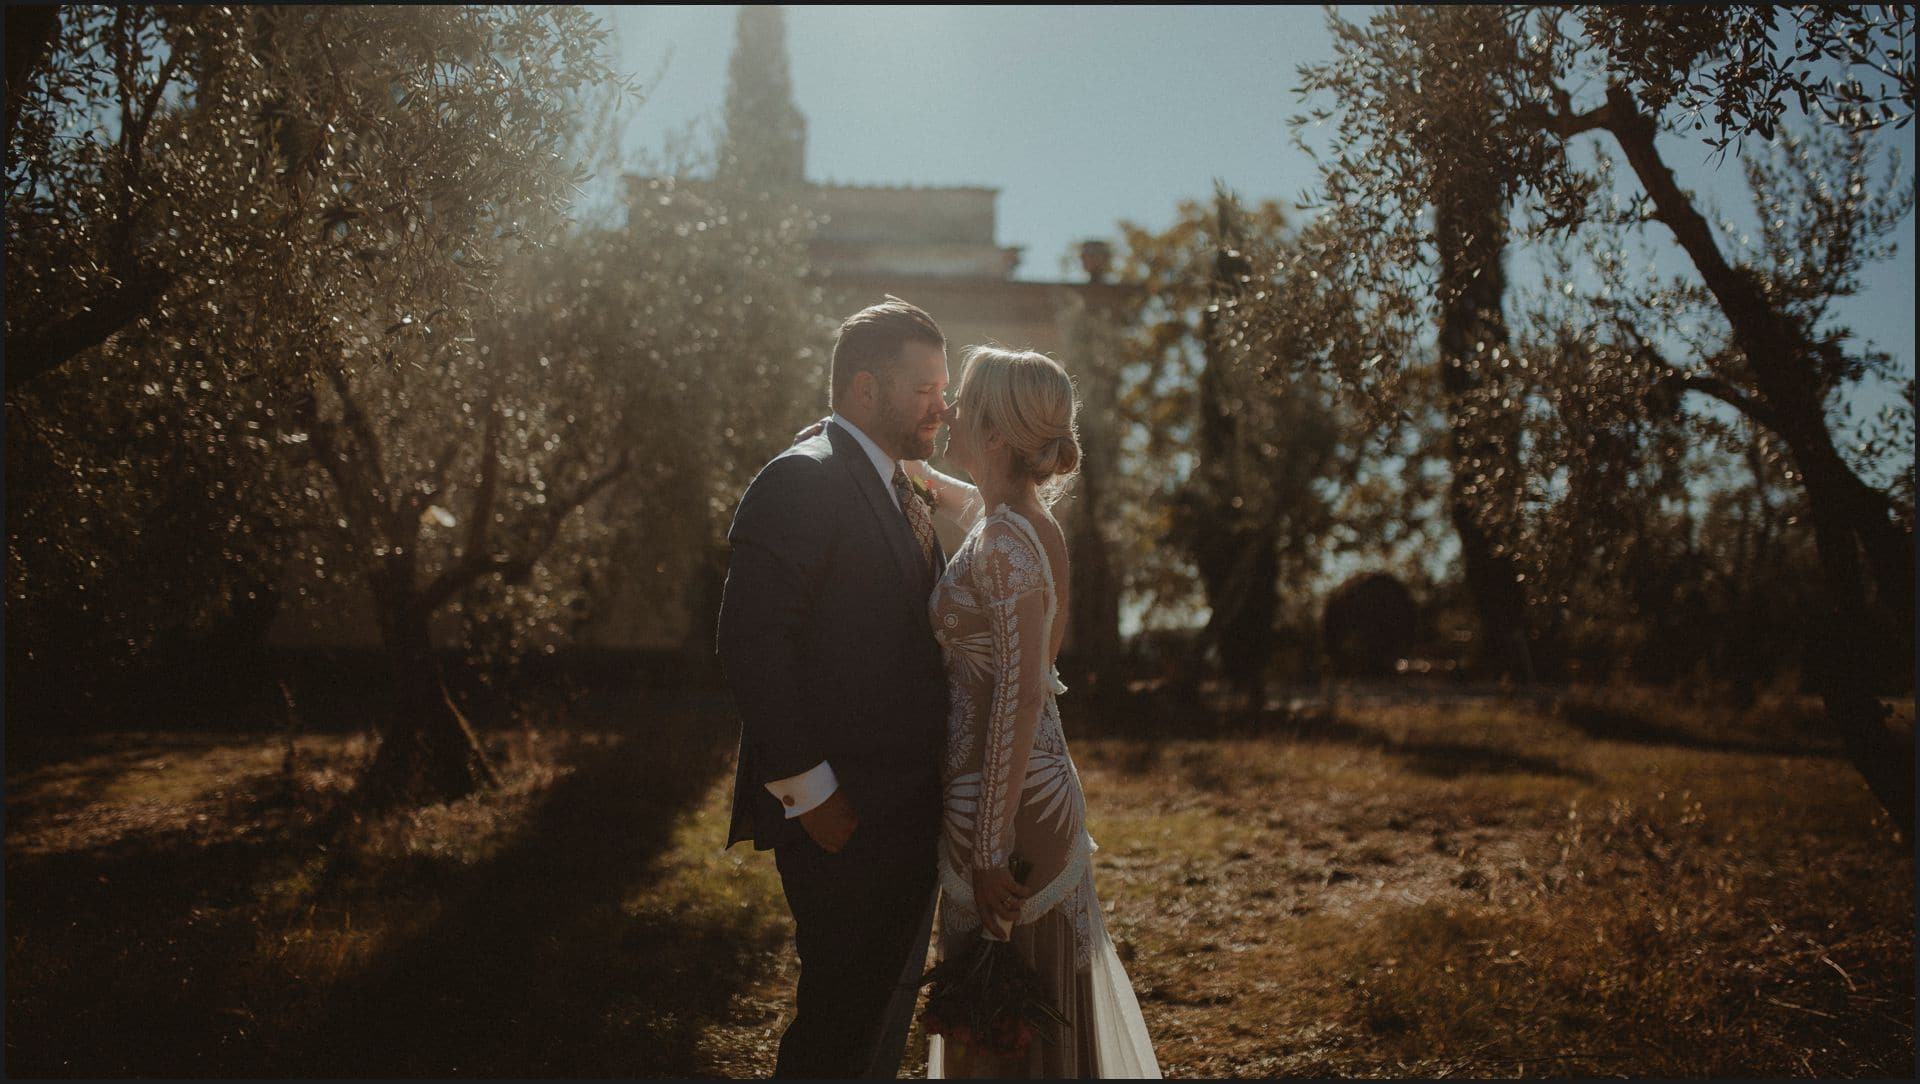 wedding, tuscany, villa medicea di lilliano, elopement wedding, golden hour, bride, groom, intimate portrait